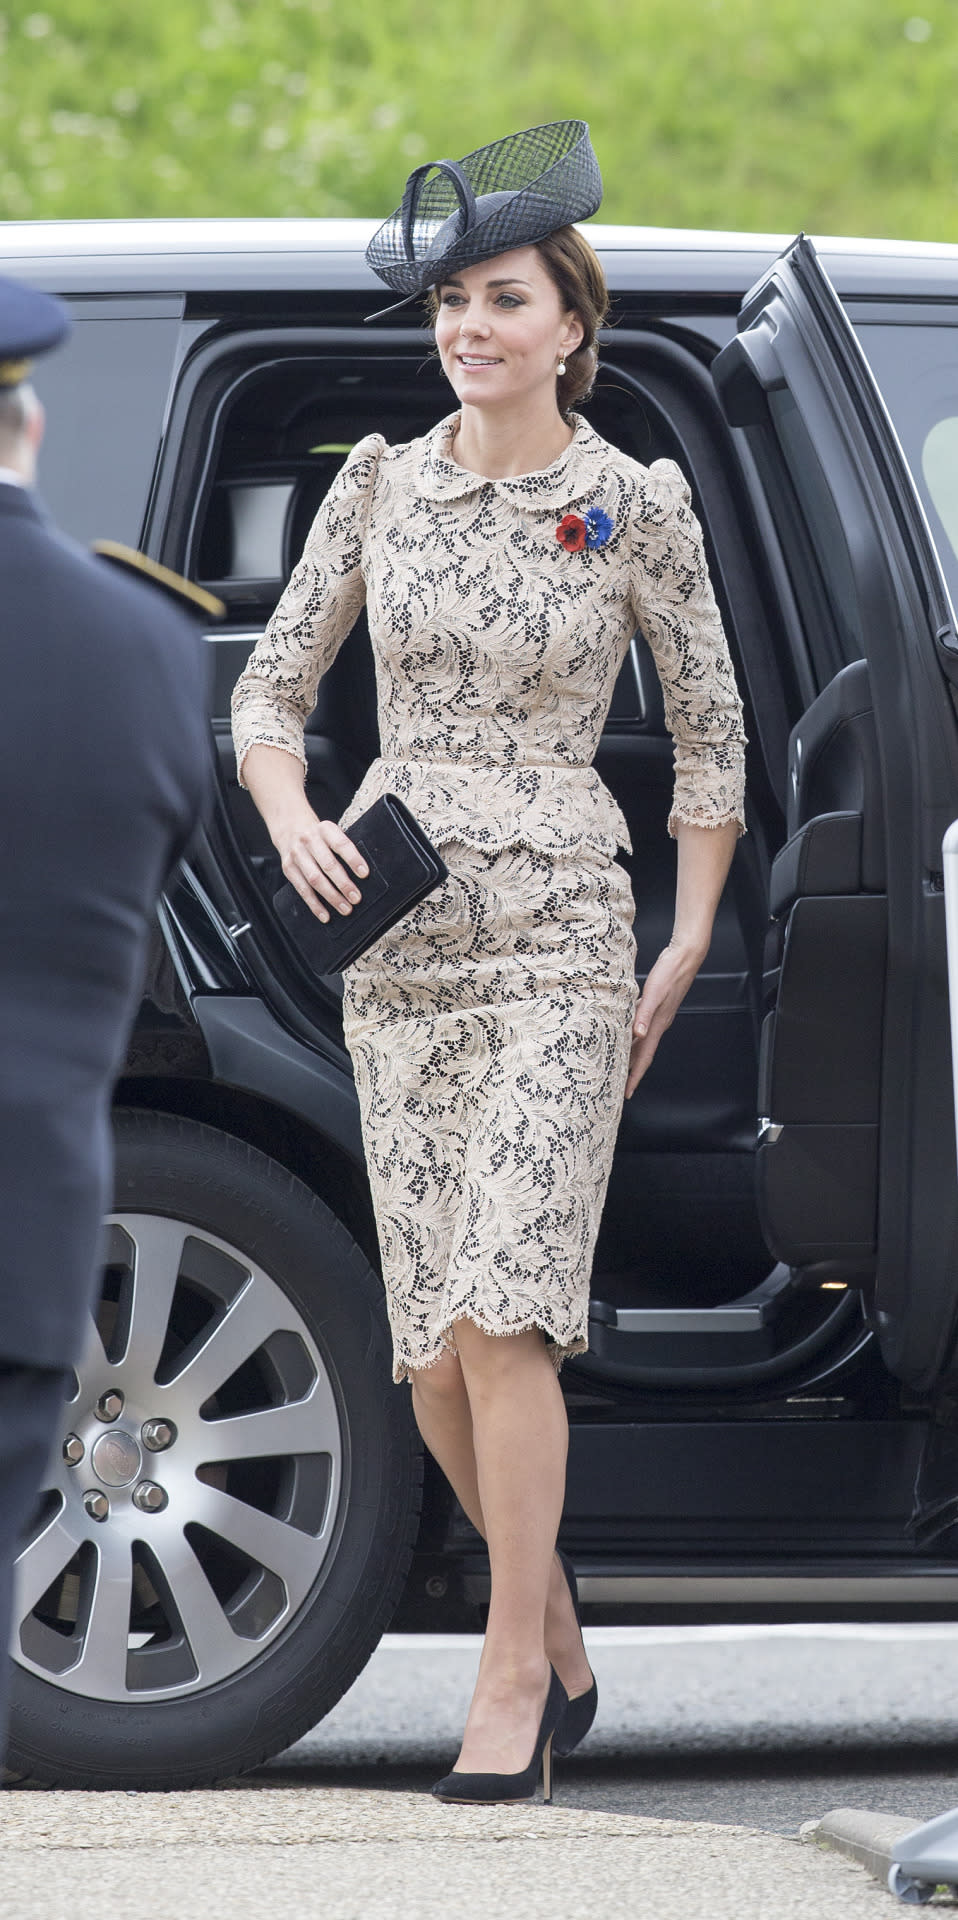 <p>A nude lace dress was Kate's outfit of choice for the 100th anniversary service of the Battle of the Somme. Made by Sophie Hallette (the same firm that created the lace used for Kate's wedding dress), the look was finished with a simple black hat and Mulberry clutch.</p><p><i>[Photo: PA]</i></p>